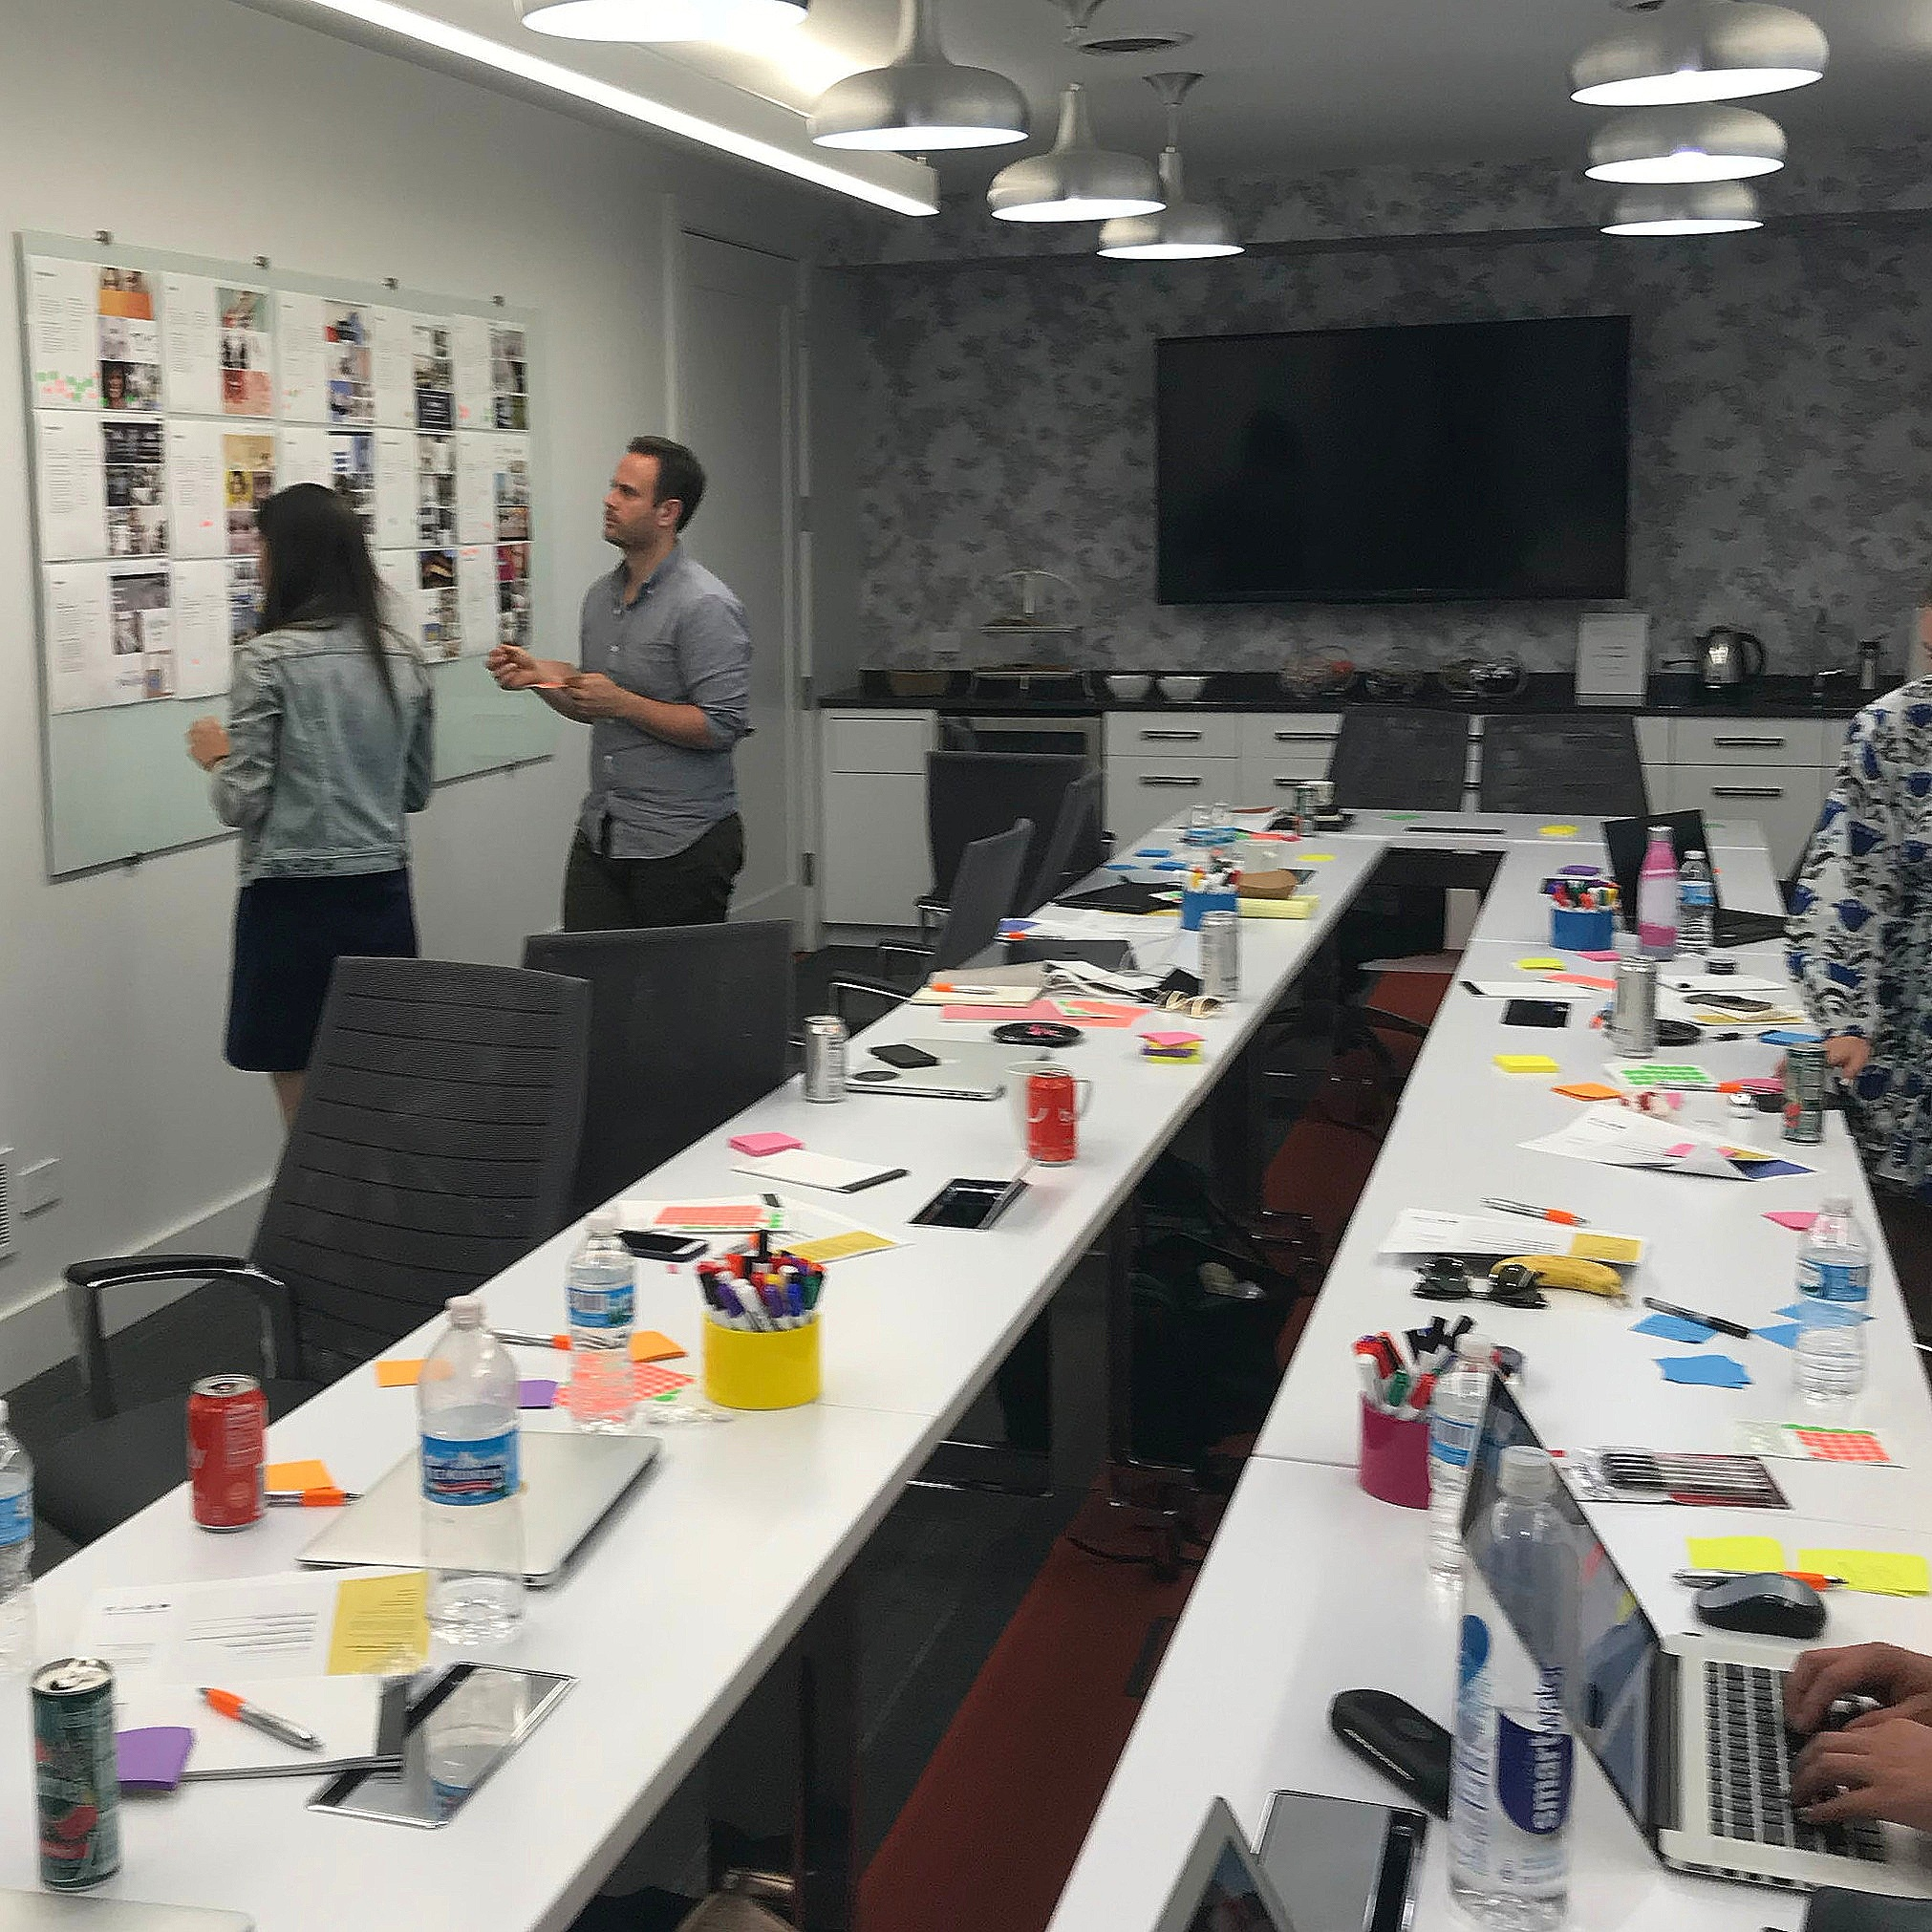 DESIGN THINKING WORKSHOPS